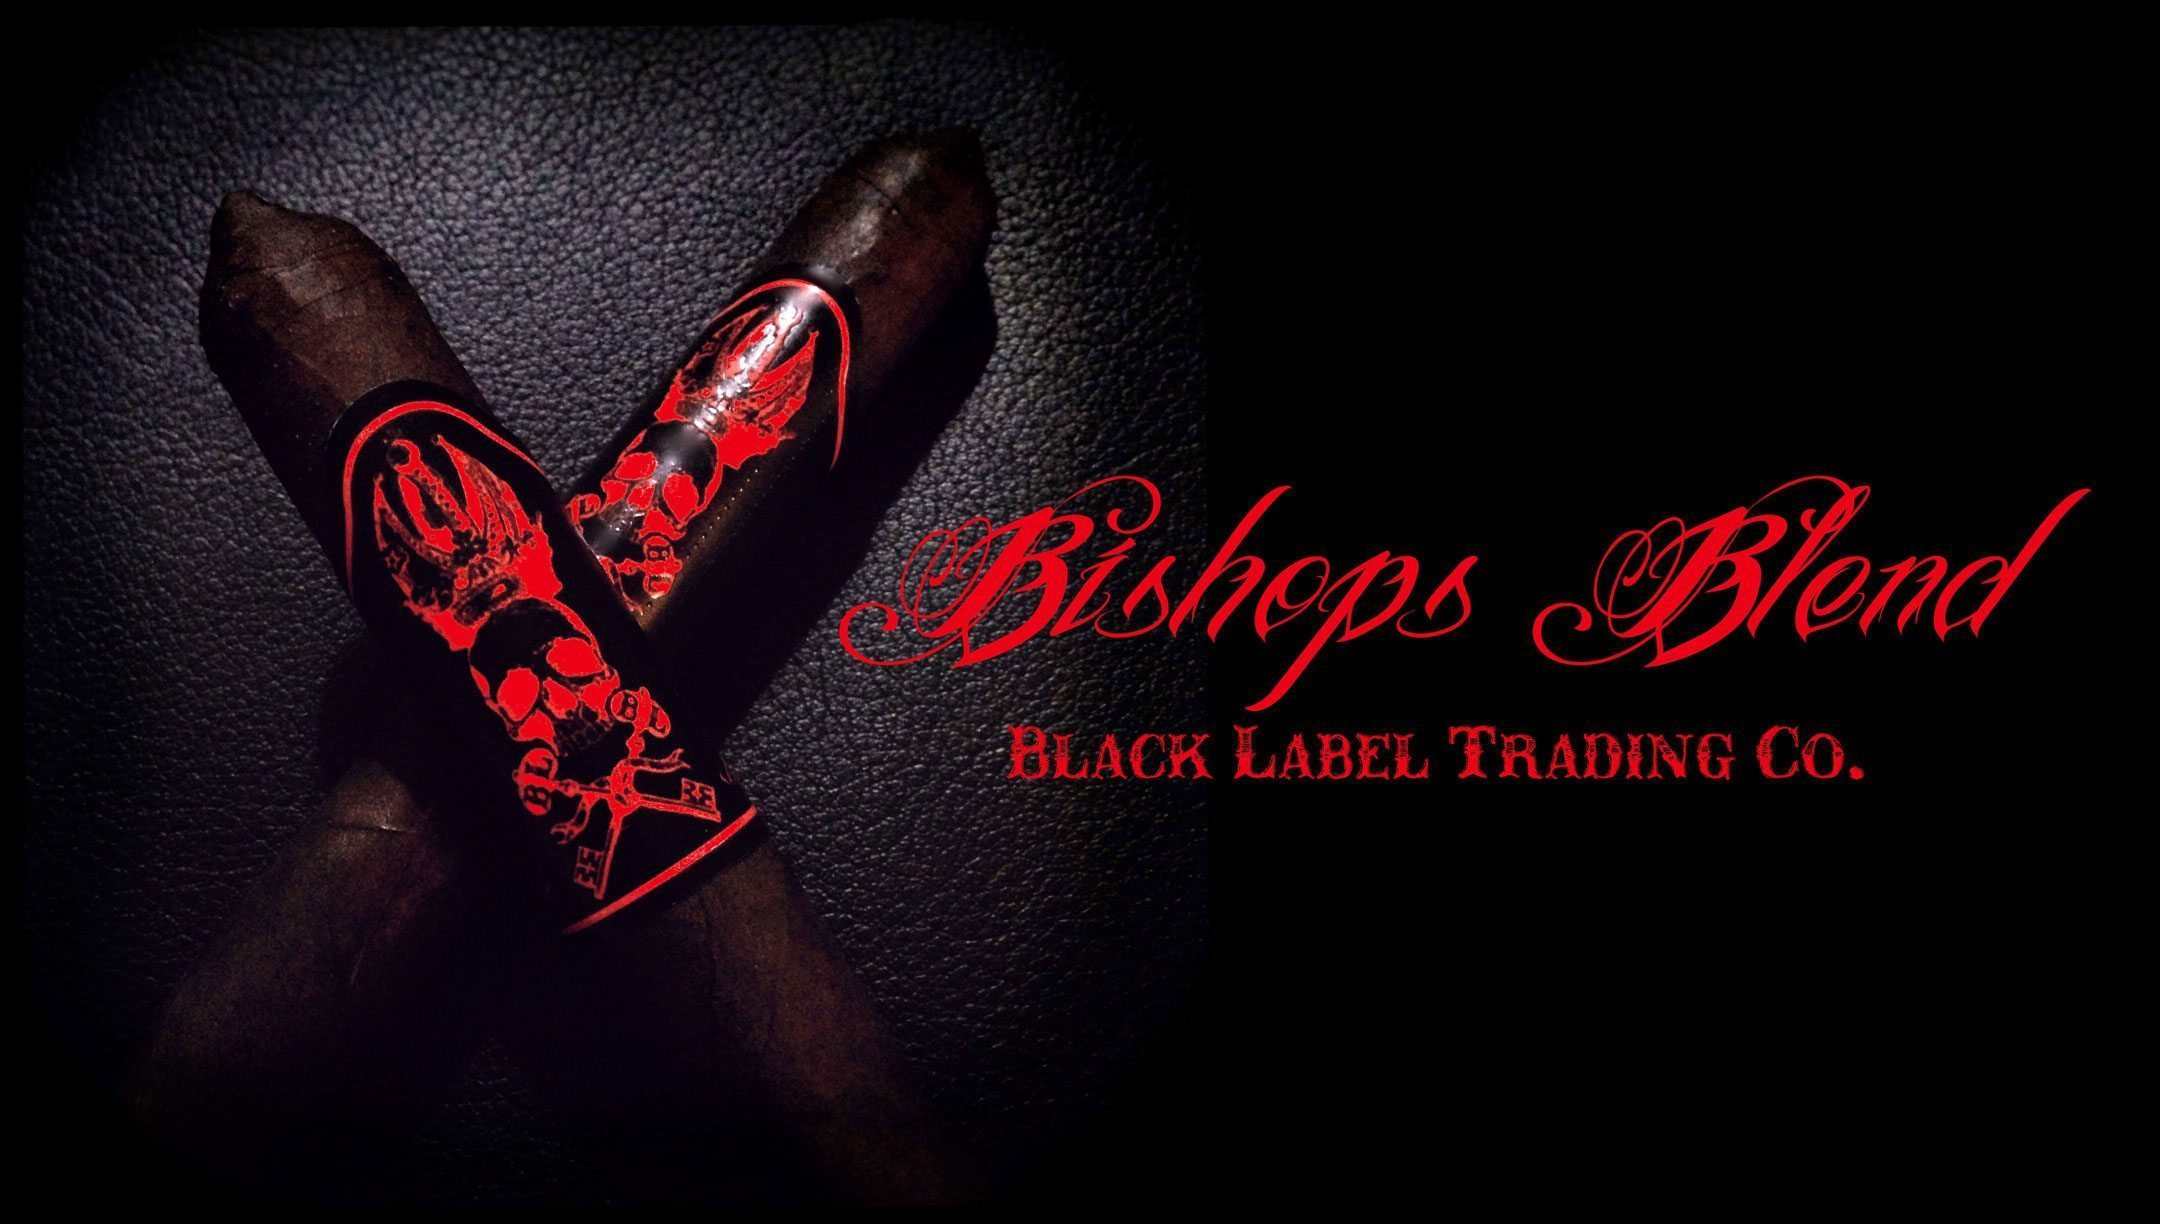 Cigar News: Black Label Trading Company Announces The Bishops Blend